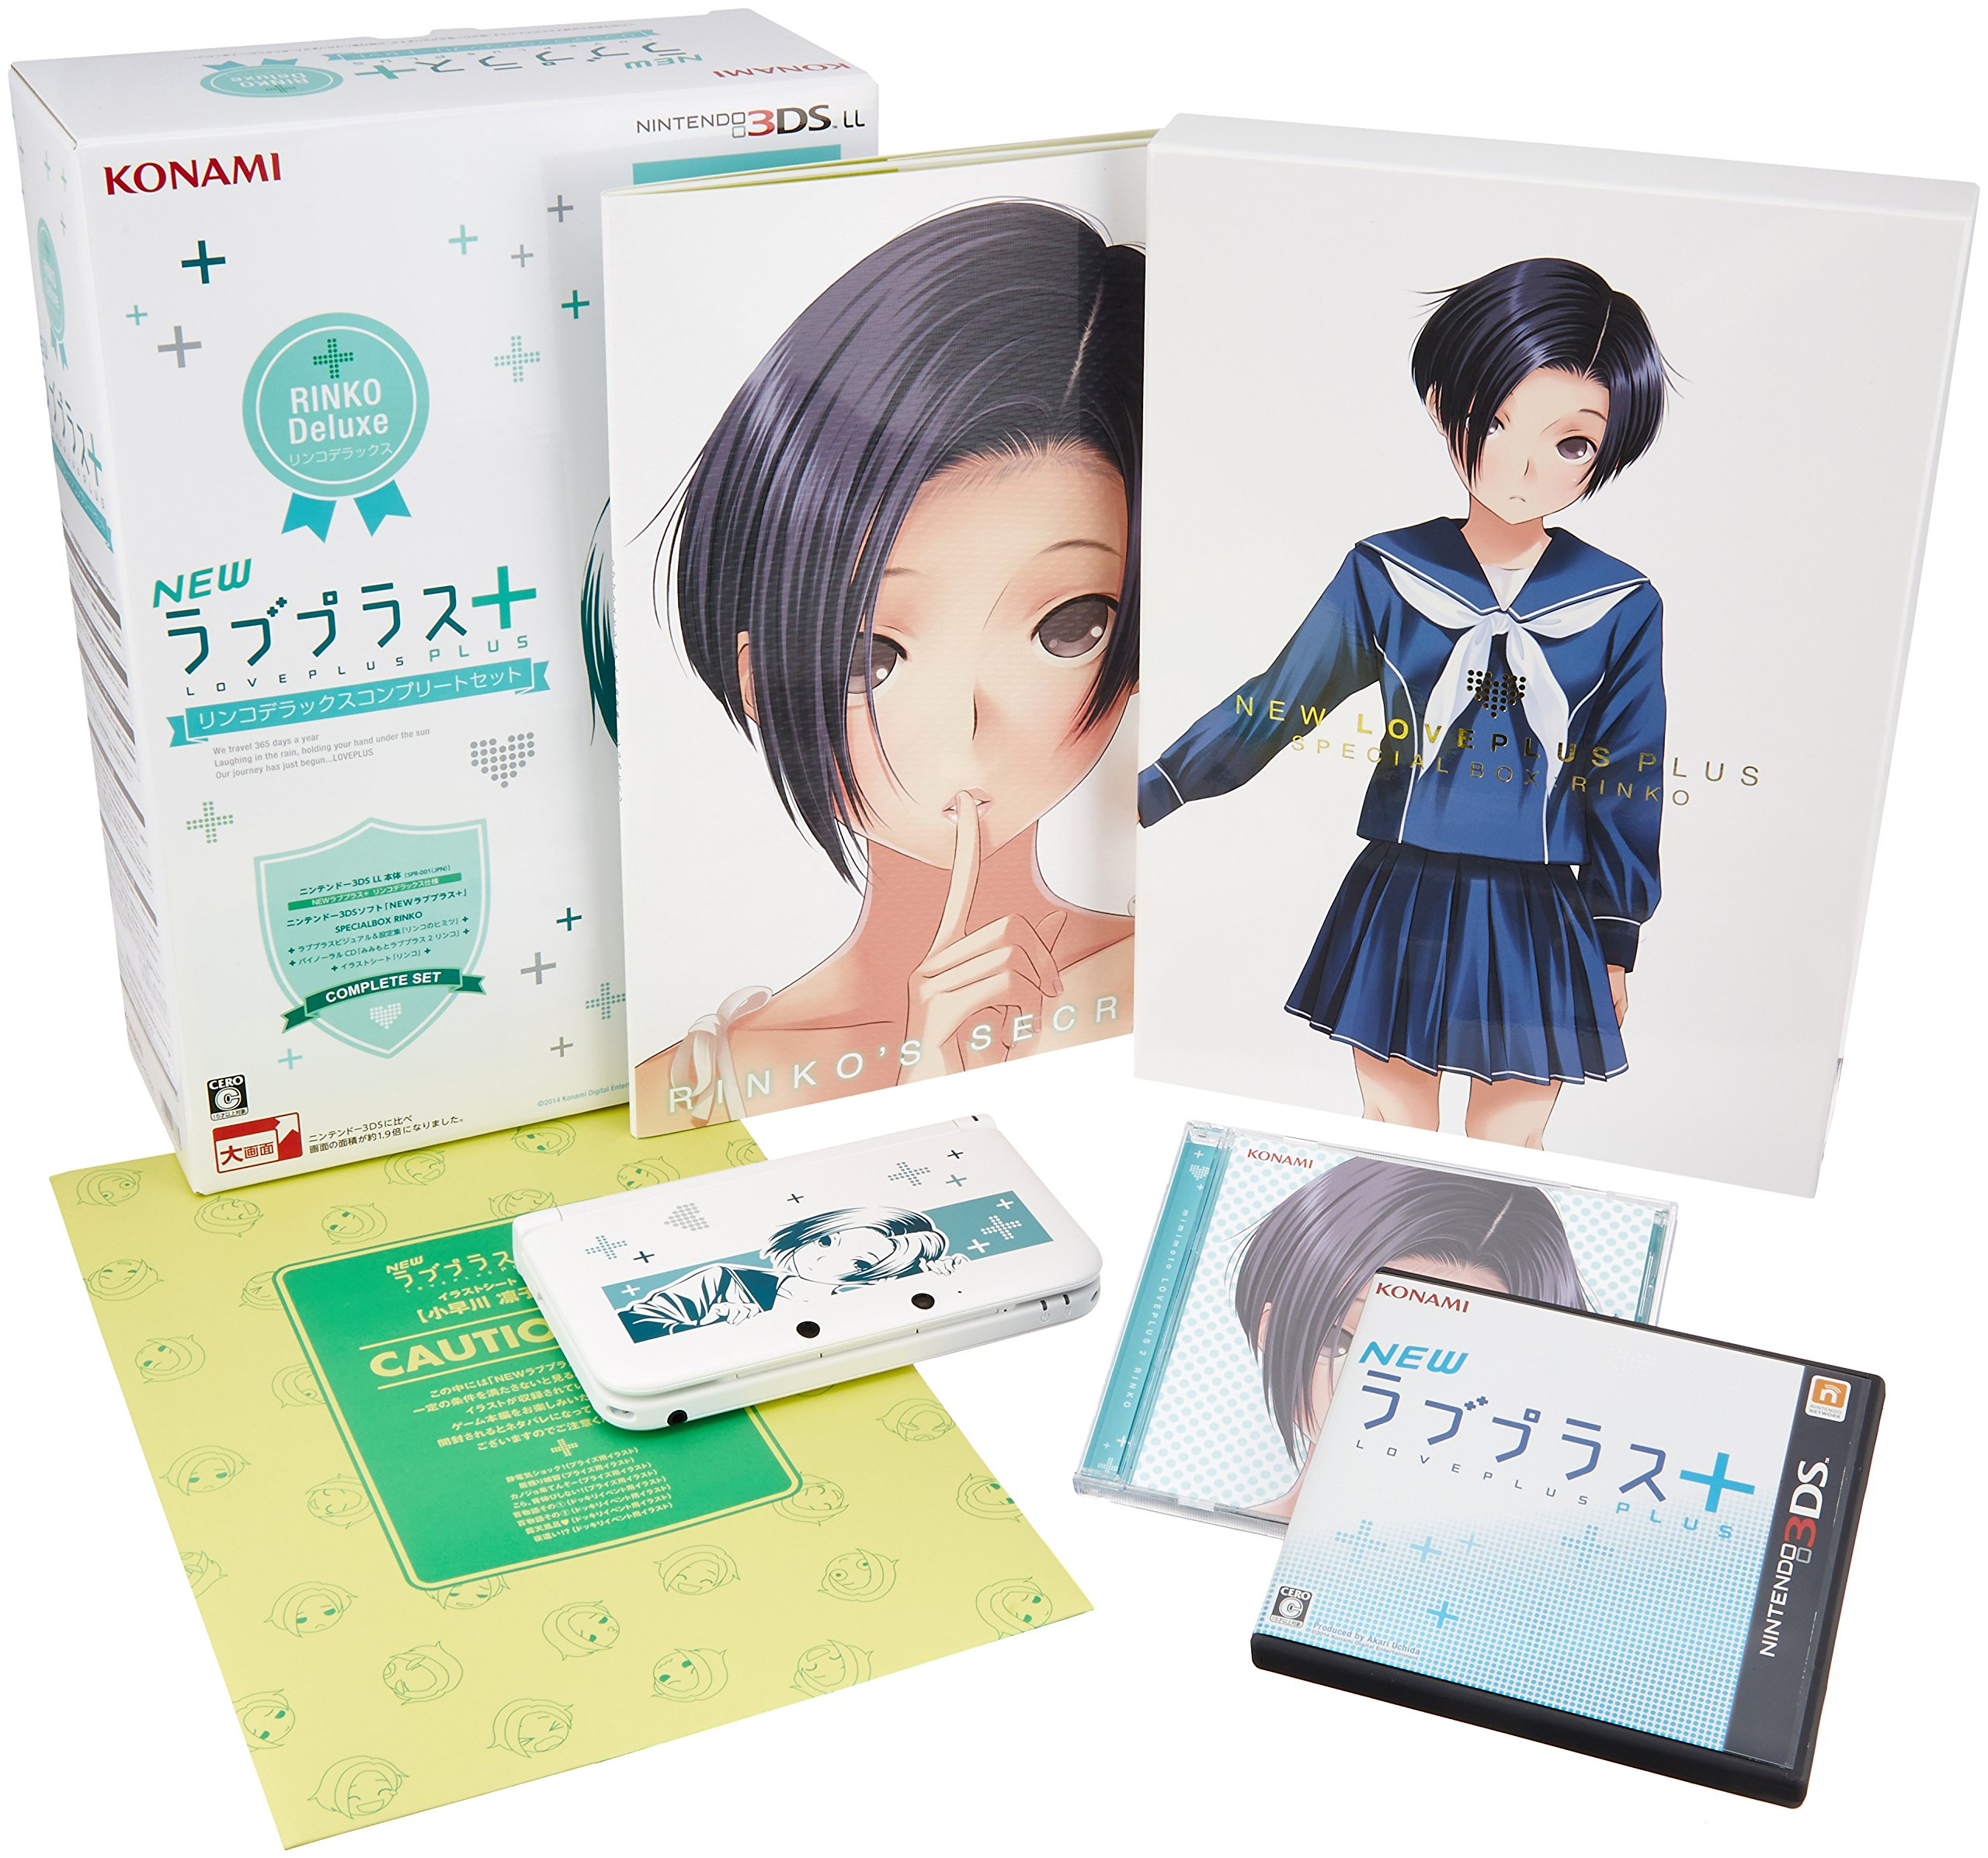 NEW LovePlus+ Rinko Deluxe Complete Set (Nintendo 3DS LL included) [Japan Import]